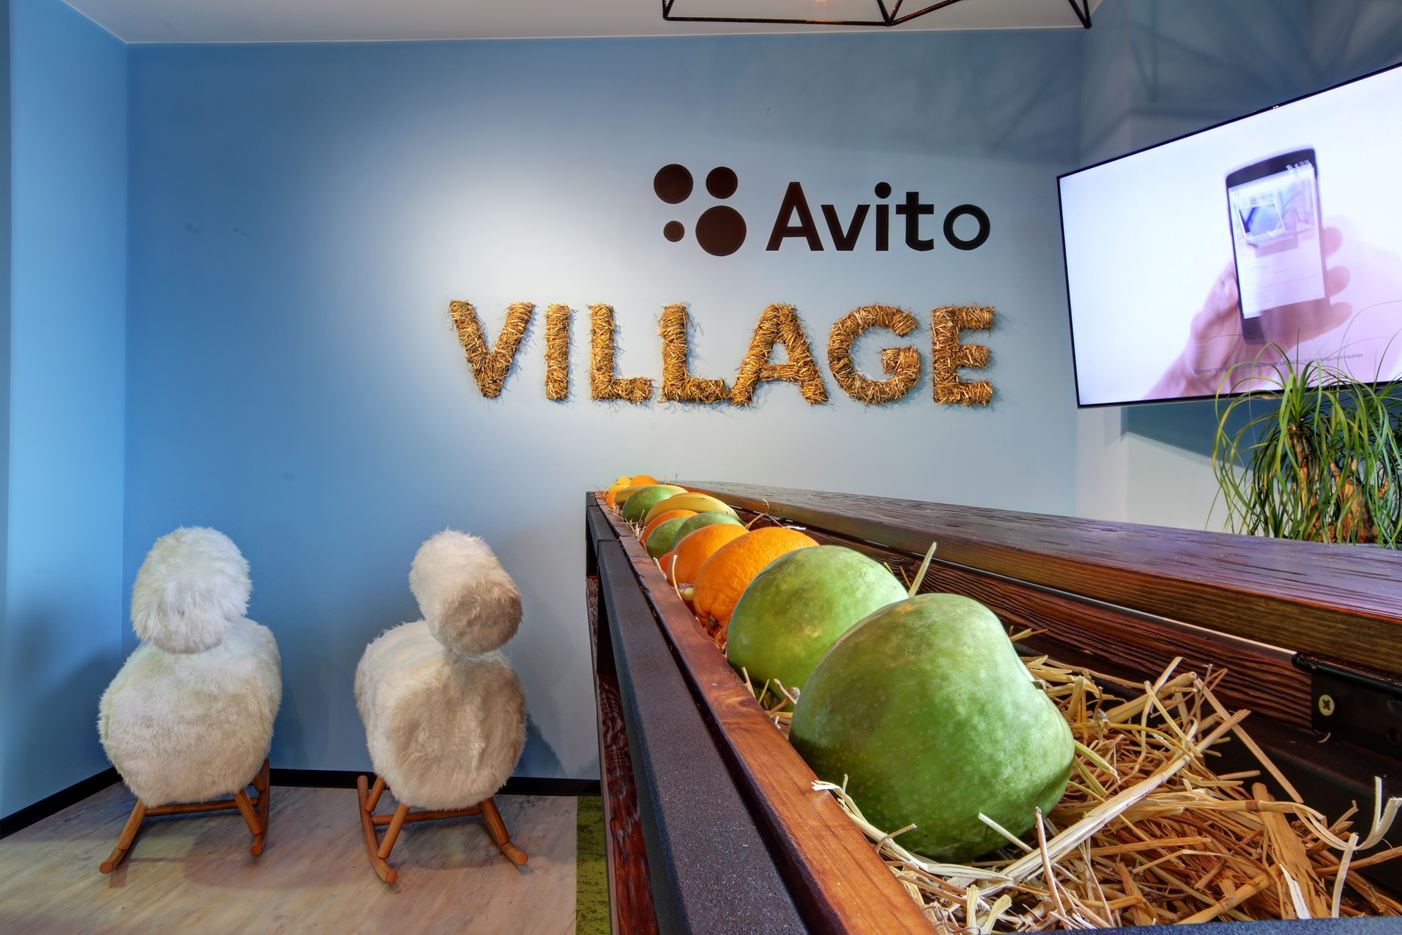 Avito.ru Office in Moscow, Russia by Meandre